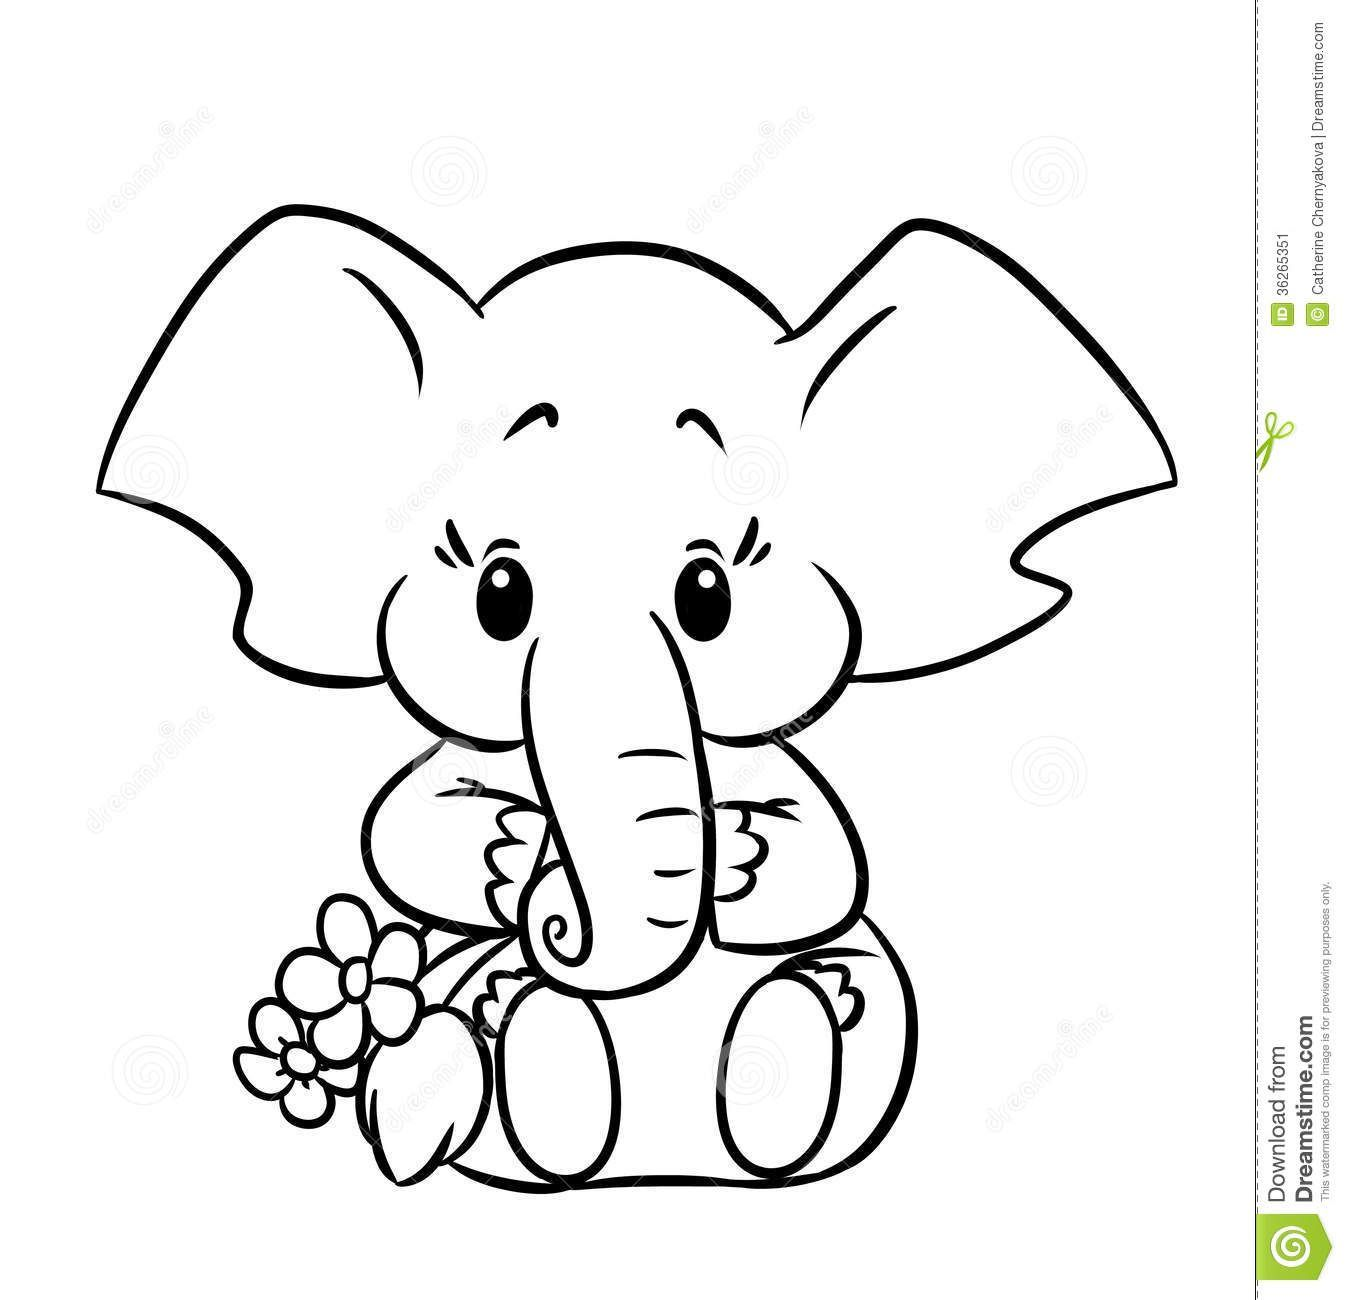 Elephant Coloring Pages Free Http Www Wallpaperartdesignhd Us Elephant Coloring Pages Free 4865 Elephant Coloring Page Baby Elephant Drawing Elephant Drawing